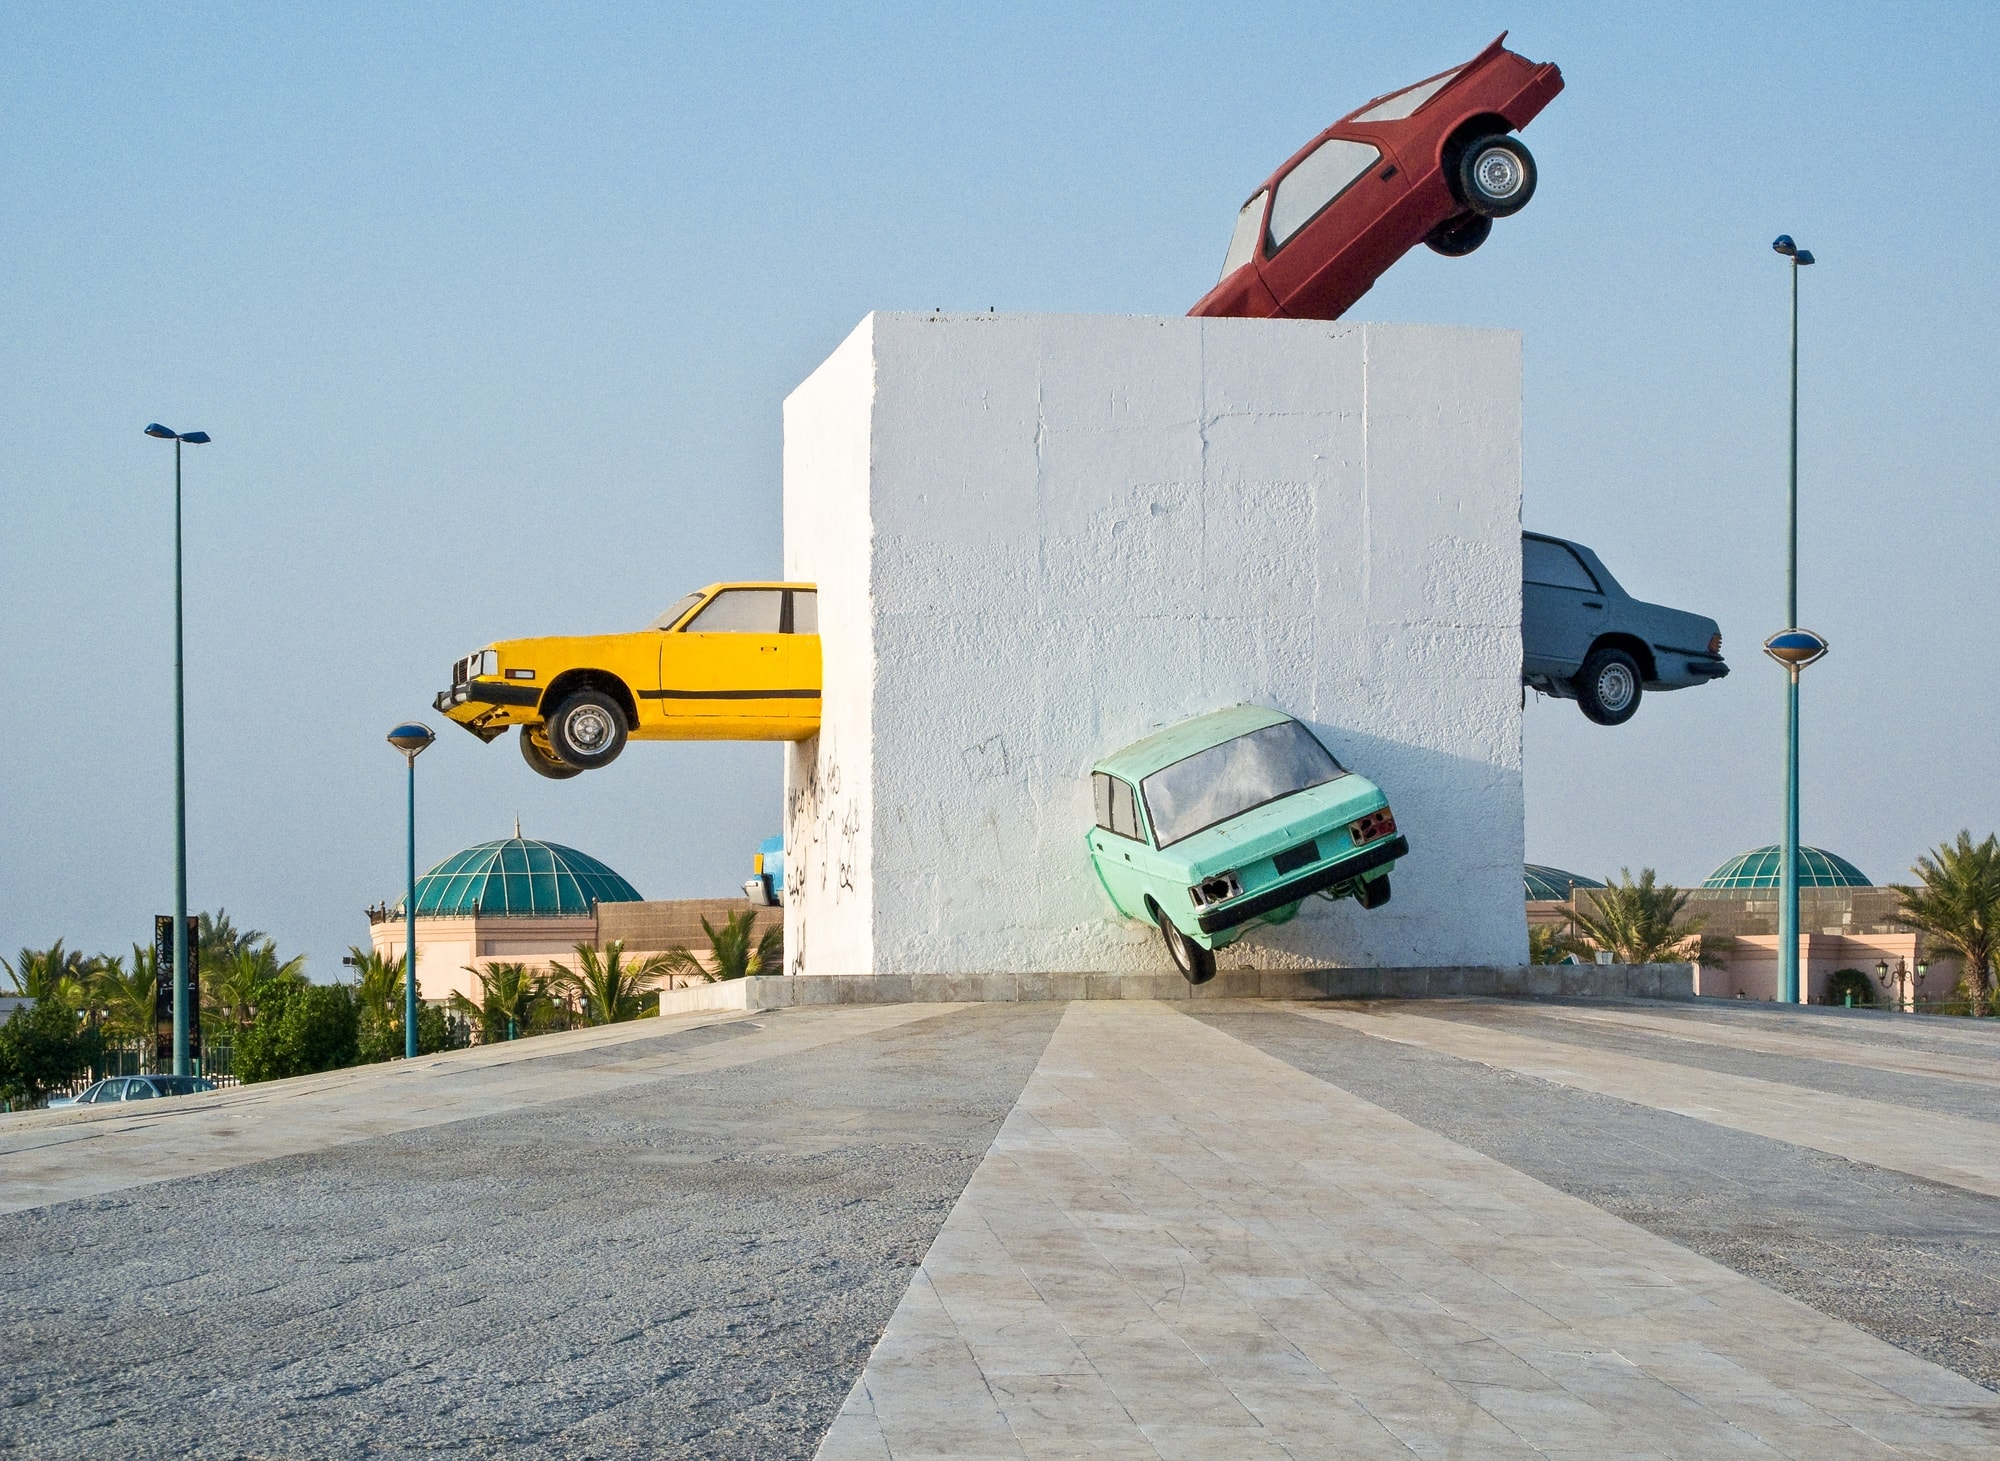 Sculpture: 'The Accident', by Julio La Fuente on the Corniche in Jeddah